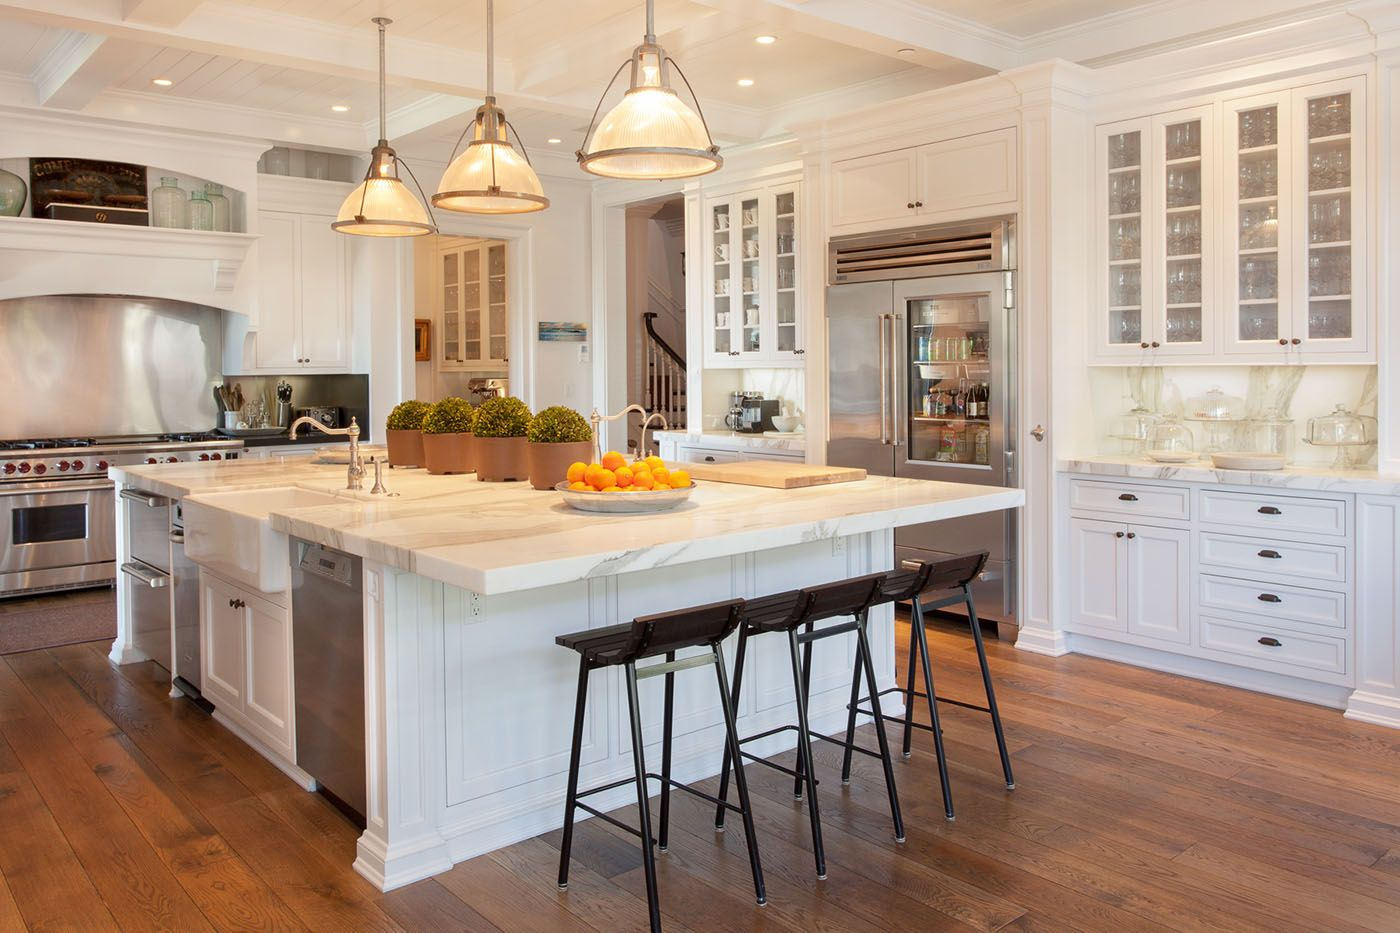 Kyle Irwin Design | Santa Barbara, Los Angeles Lifestyle | Kitchen ...